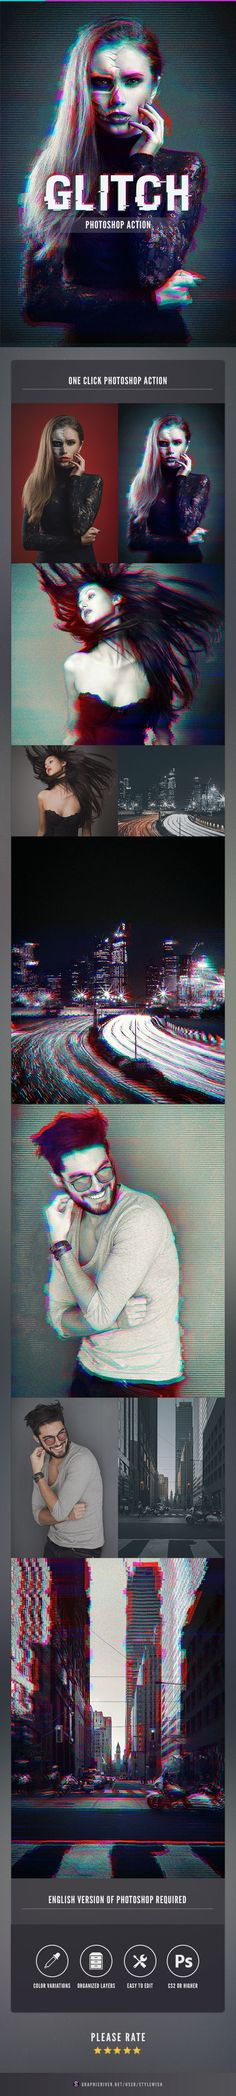 Glitch Photoshop Action - Download…                                                                                                                                                                                 Mais